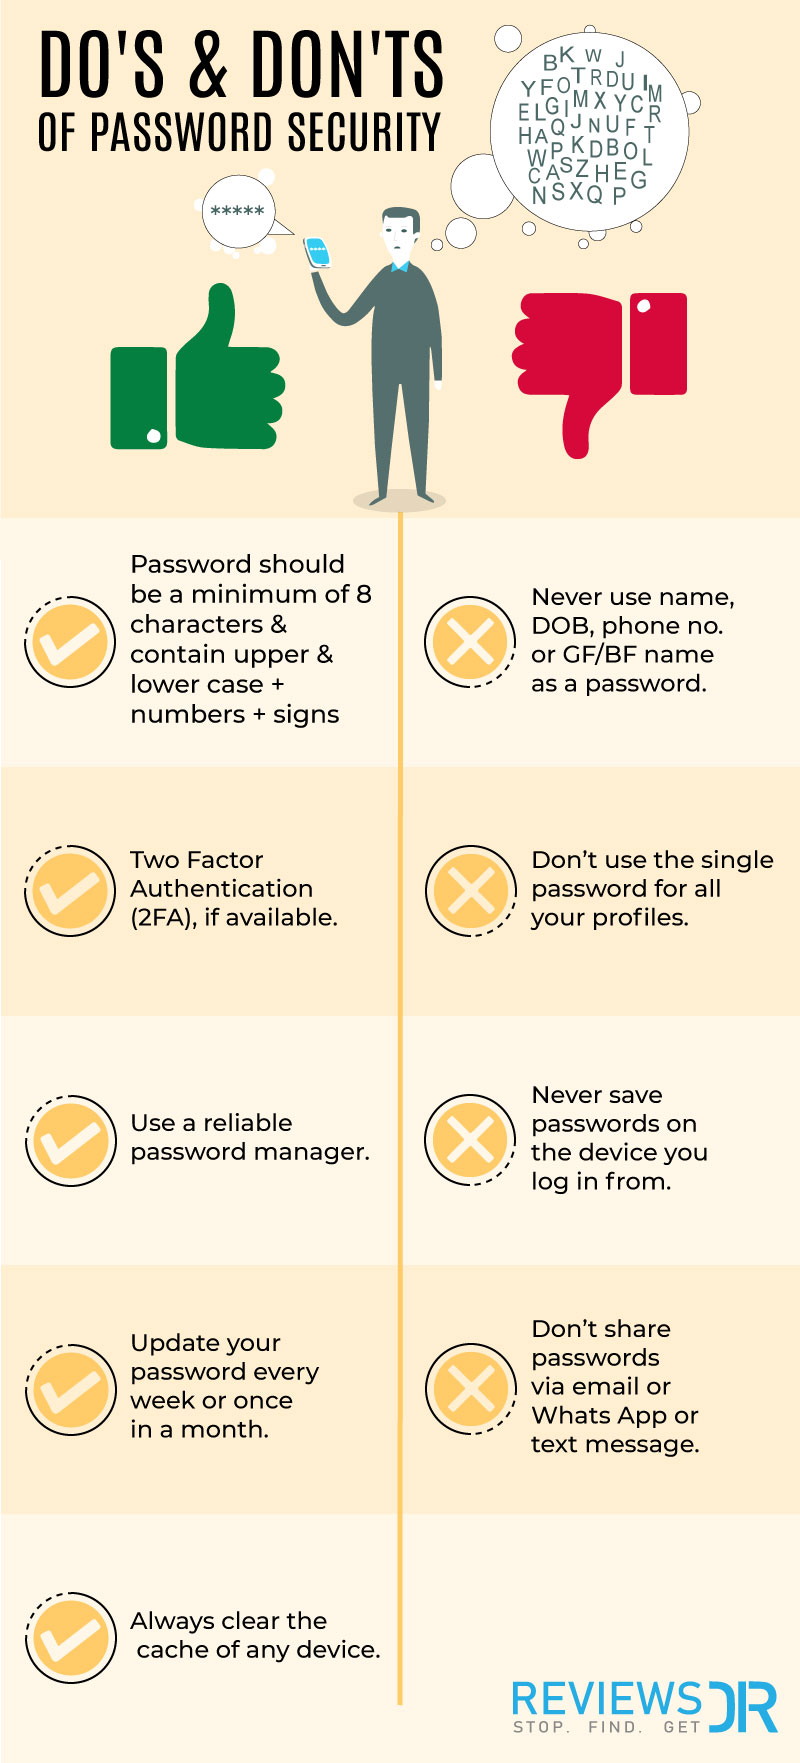 Do's & don'ts of Password